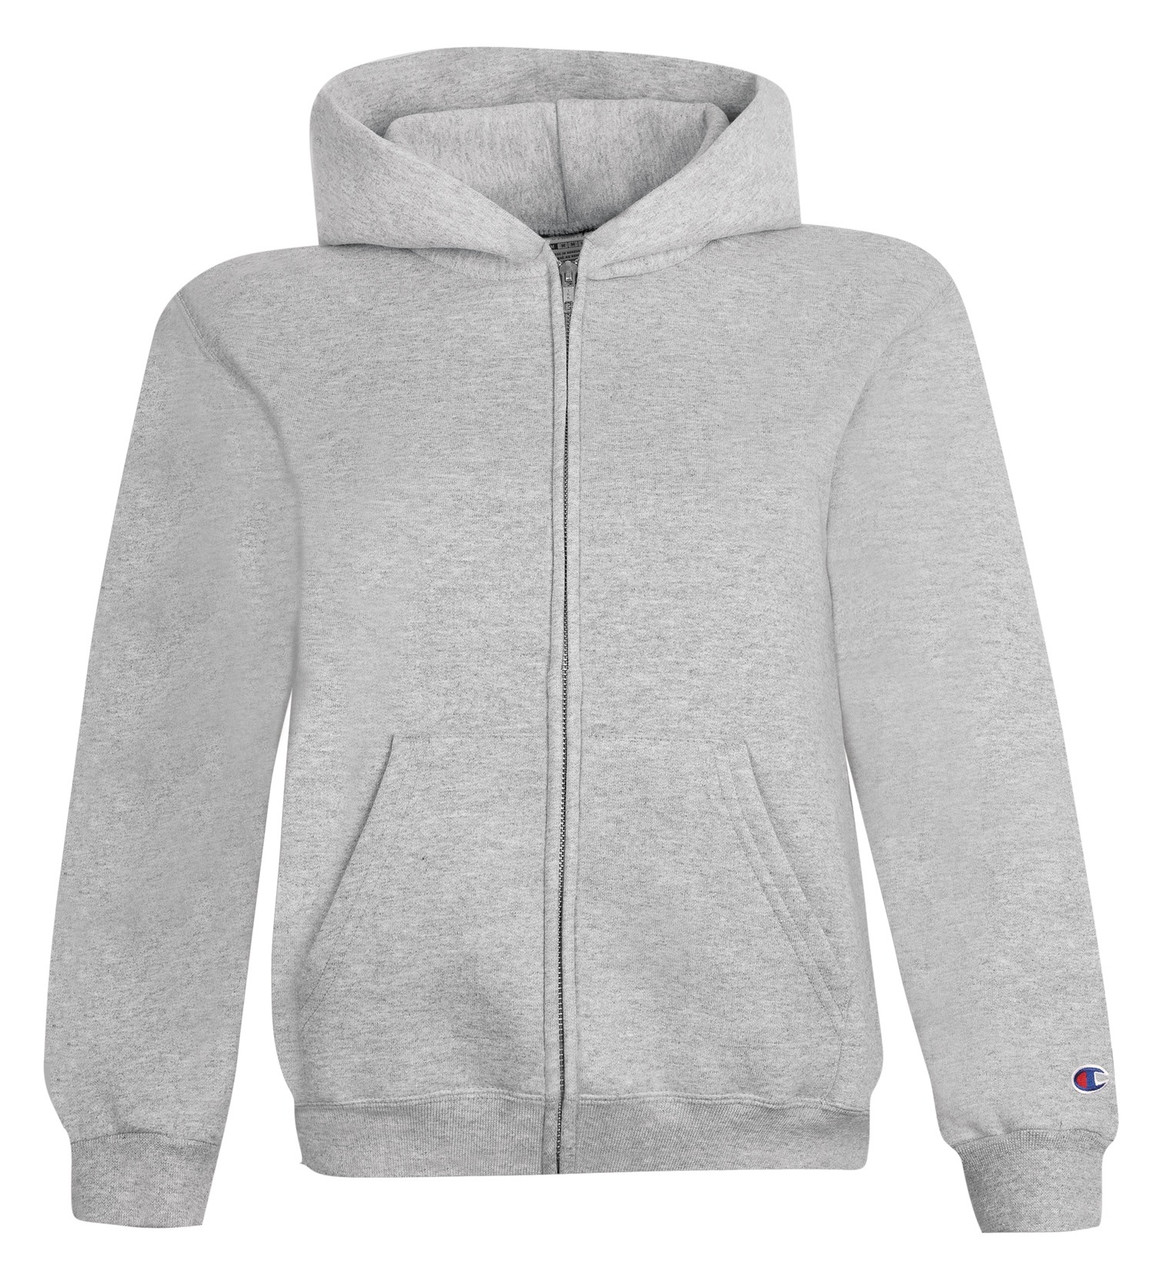 2e025f13 Black Front Champion S890 Youth Powerblend Eco Fleece Full Zip Hoodie |  Athleticwear.ca